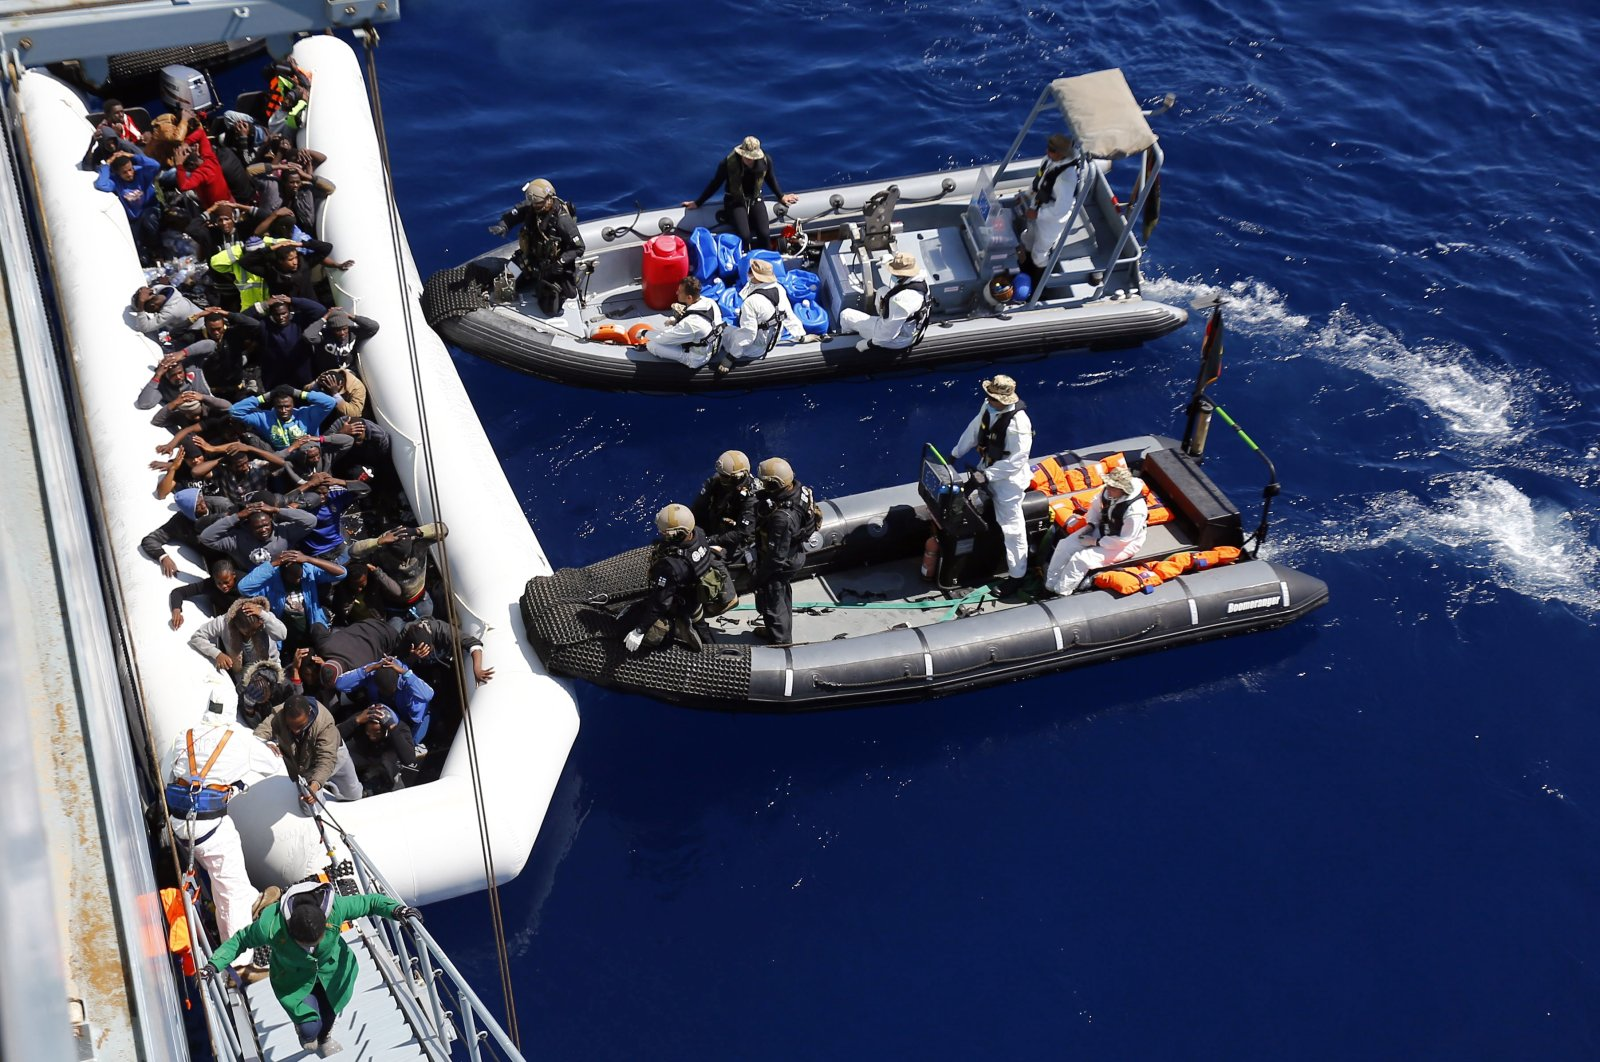 German navy sailors and Finland's special navy forces help migrants to board the German combat supply ship during the EU's Operation Sophia in the Mediterranean Sea off the coast of Libya, March 29, 2016.  (AP Photo)